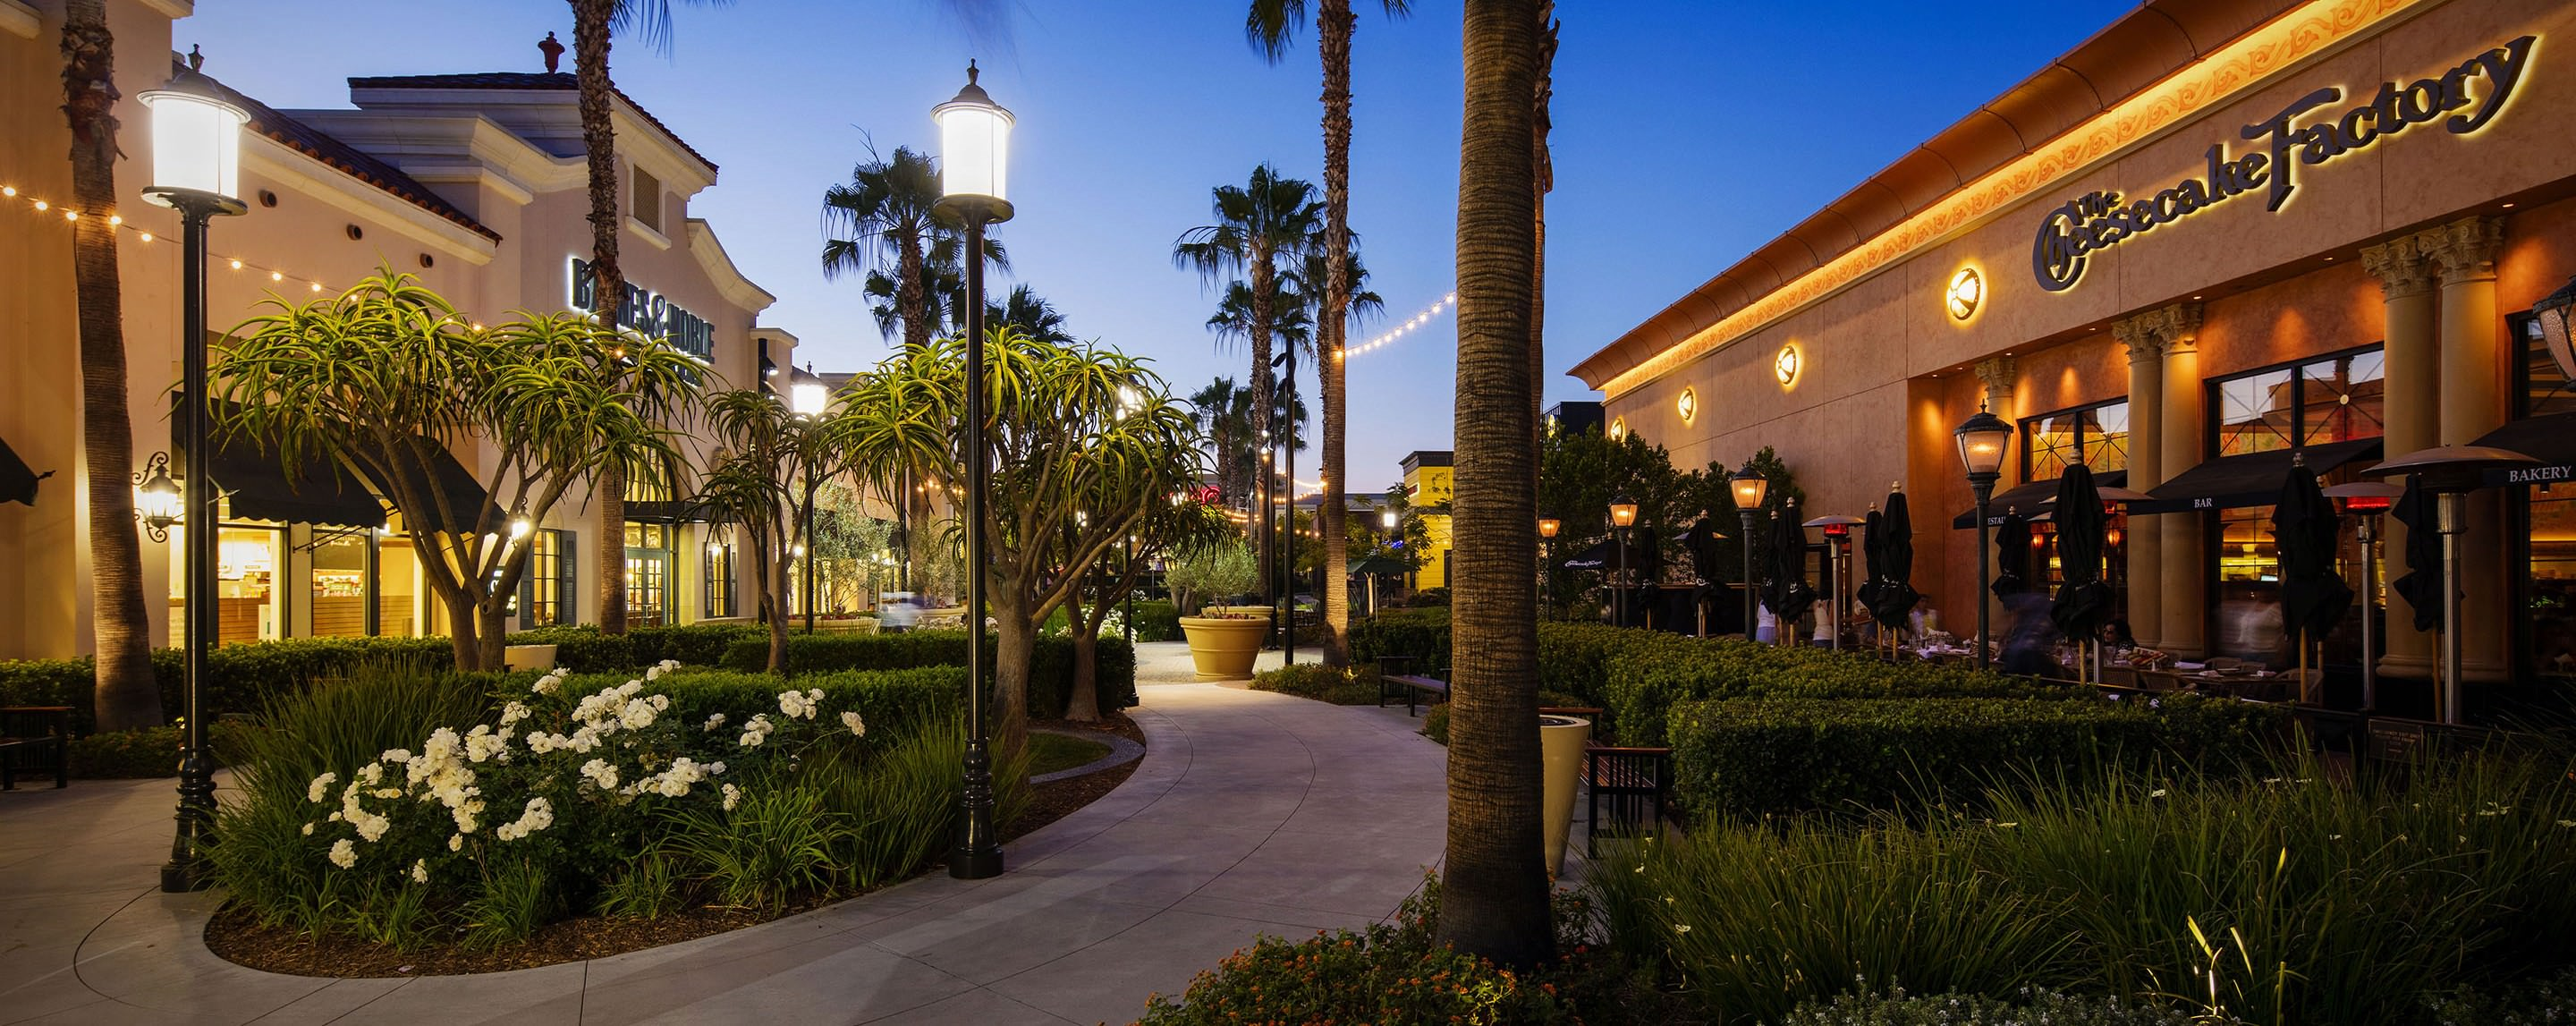 An outside shot of the landscaping between two buildings. One of the buildings is a Cheesecake Factory.